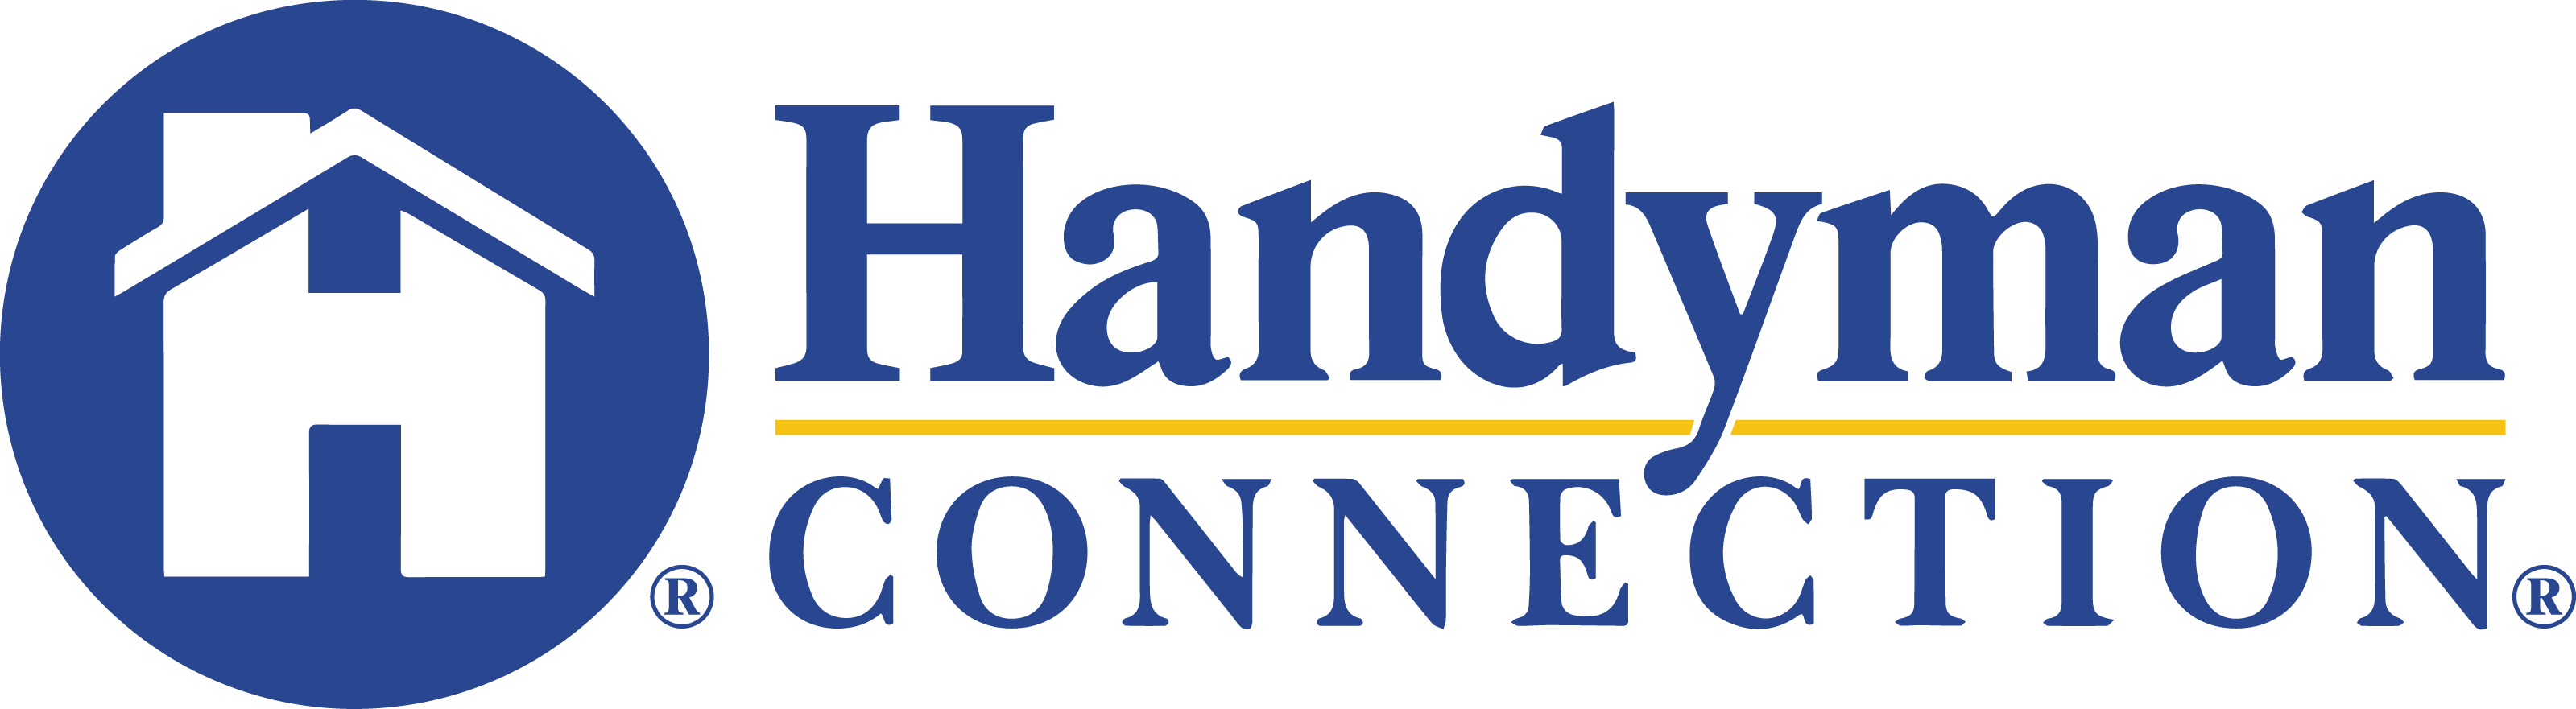 Handyman Connection of Indianapolis, IN